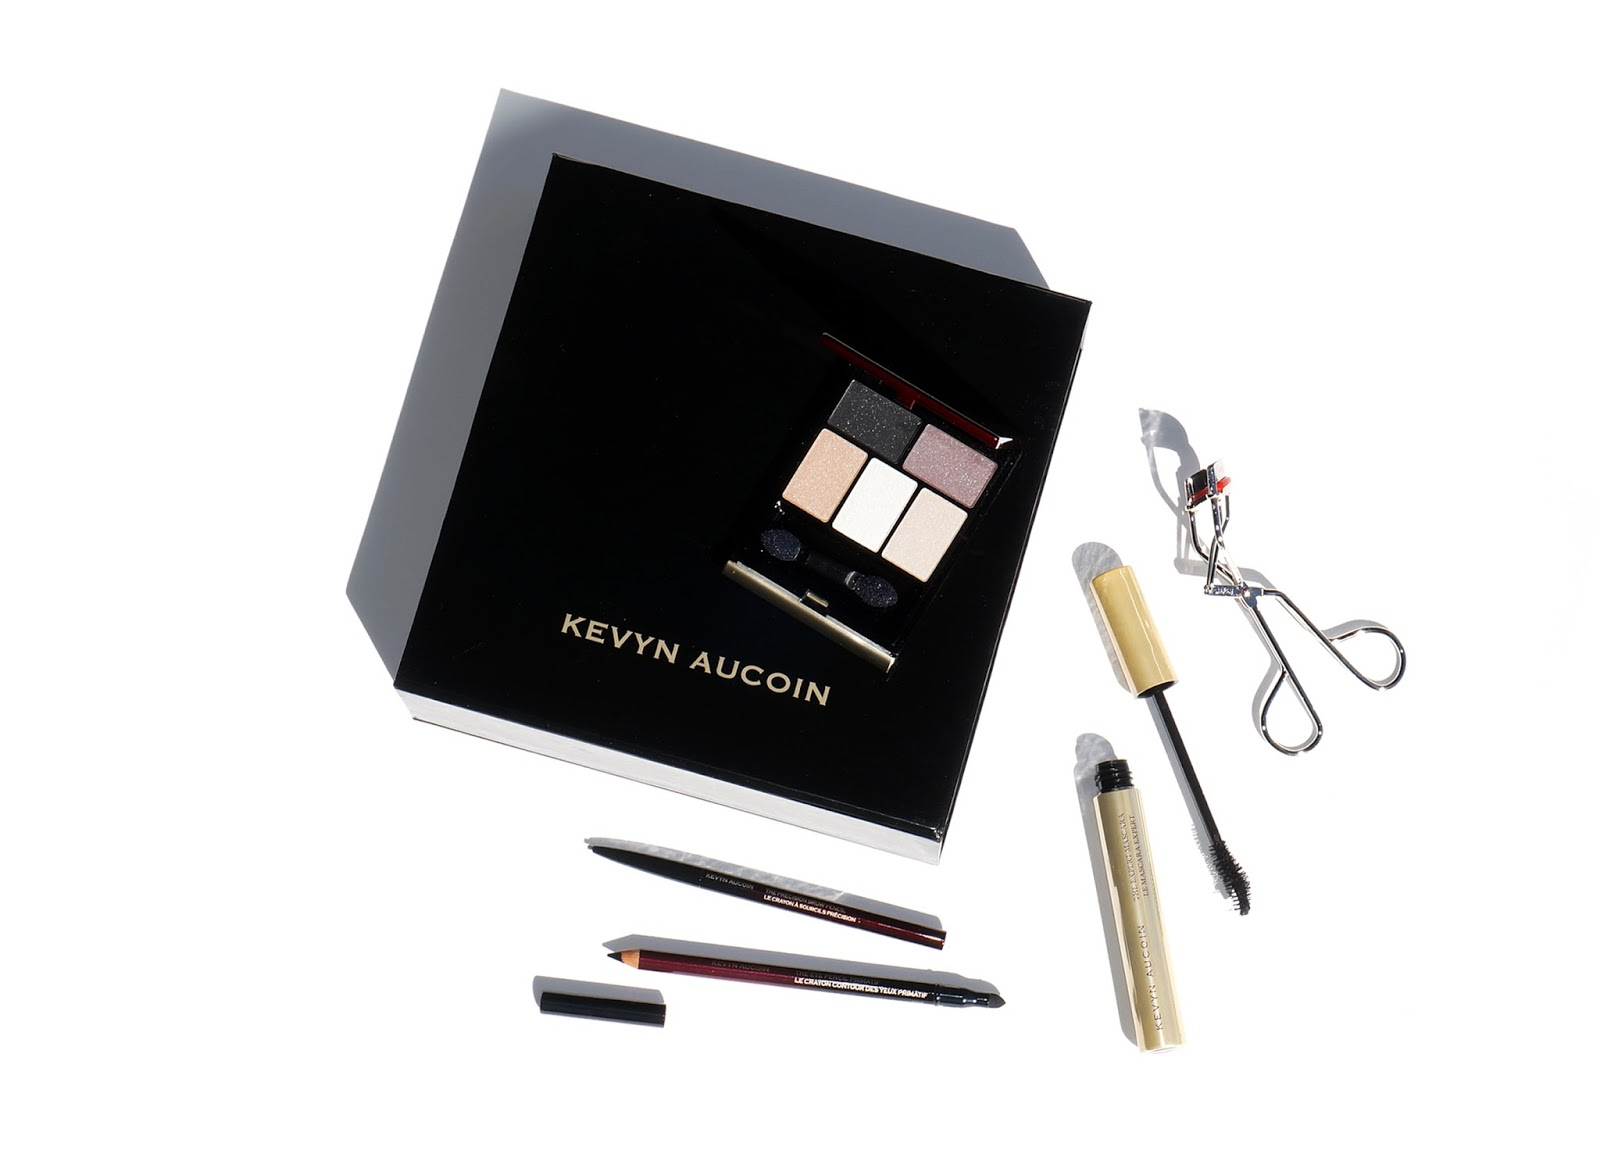 Kevyn Aucoin Making Eyes x Space NK Exclusive